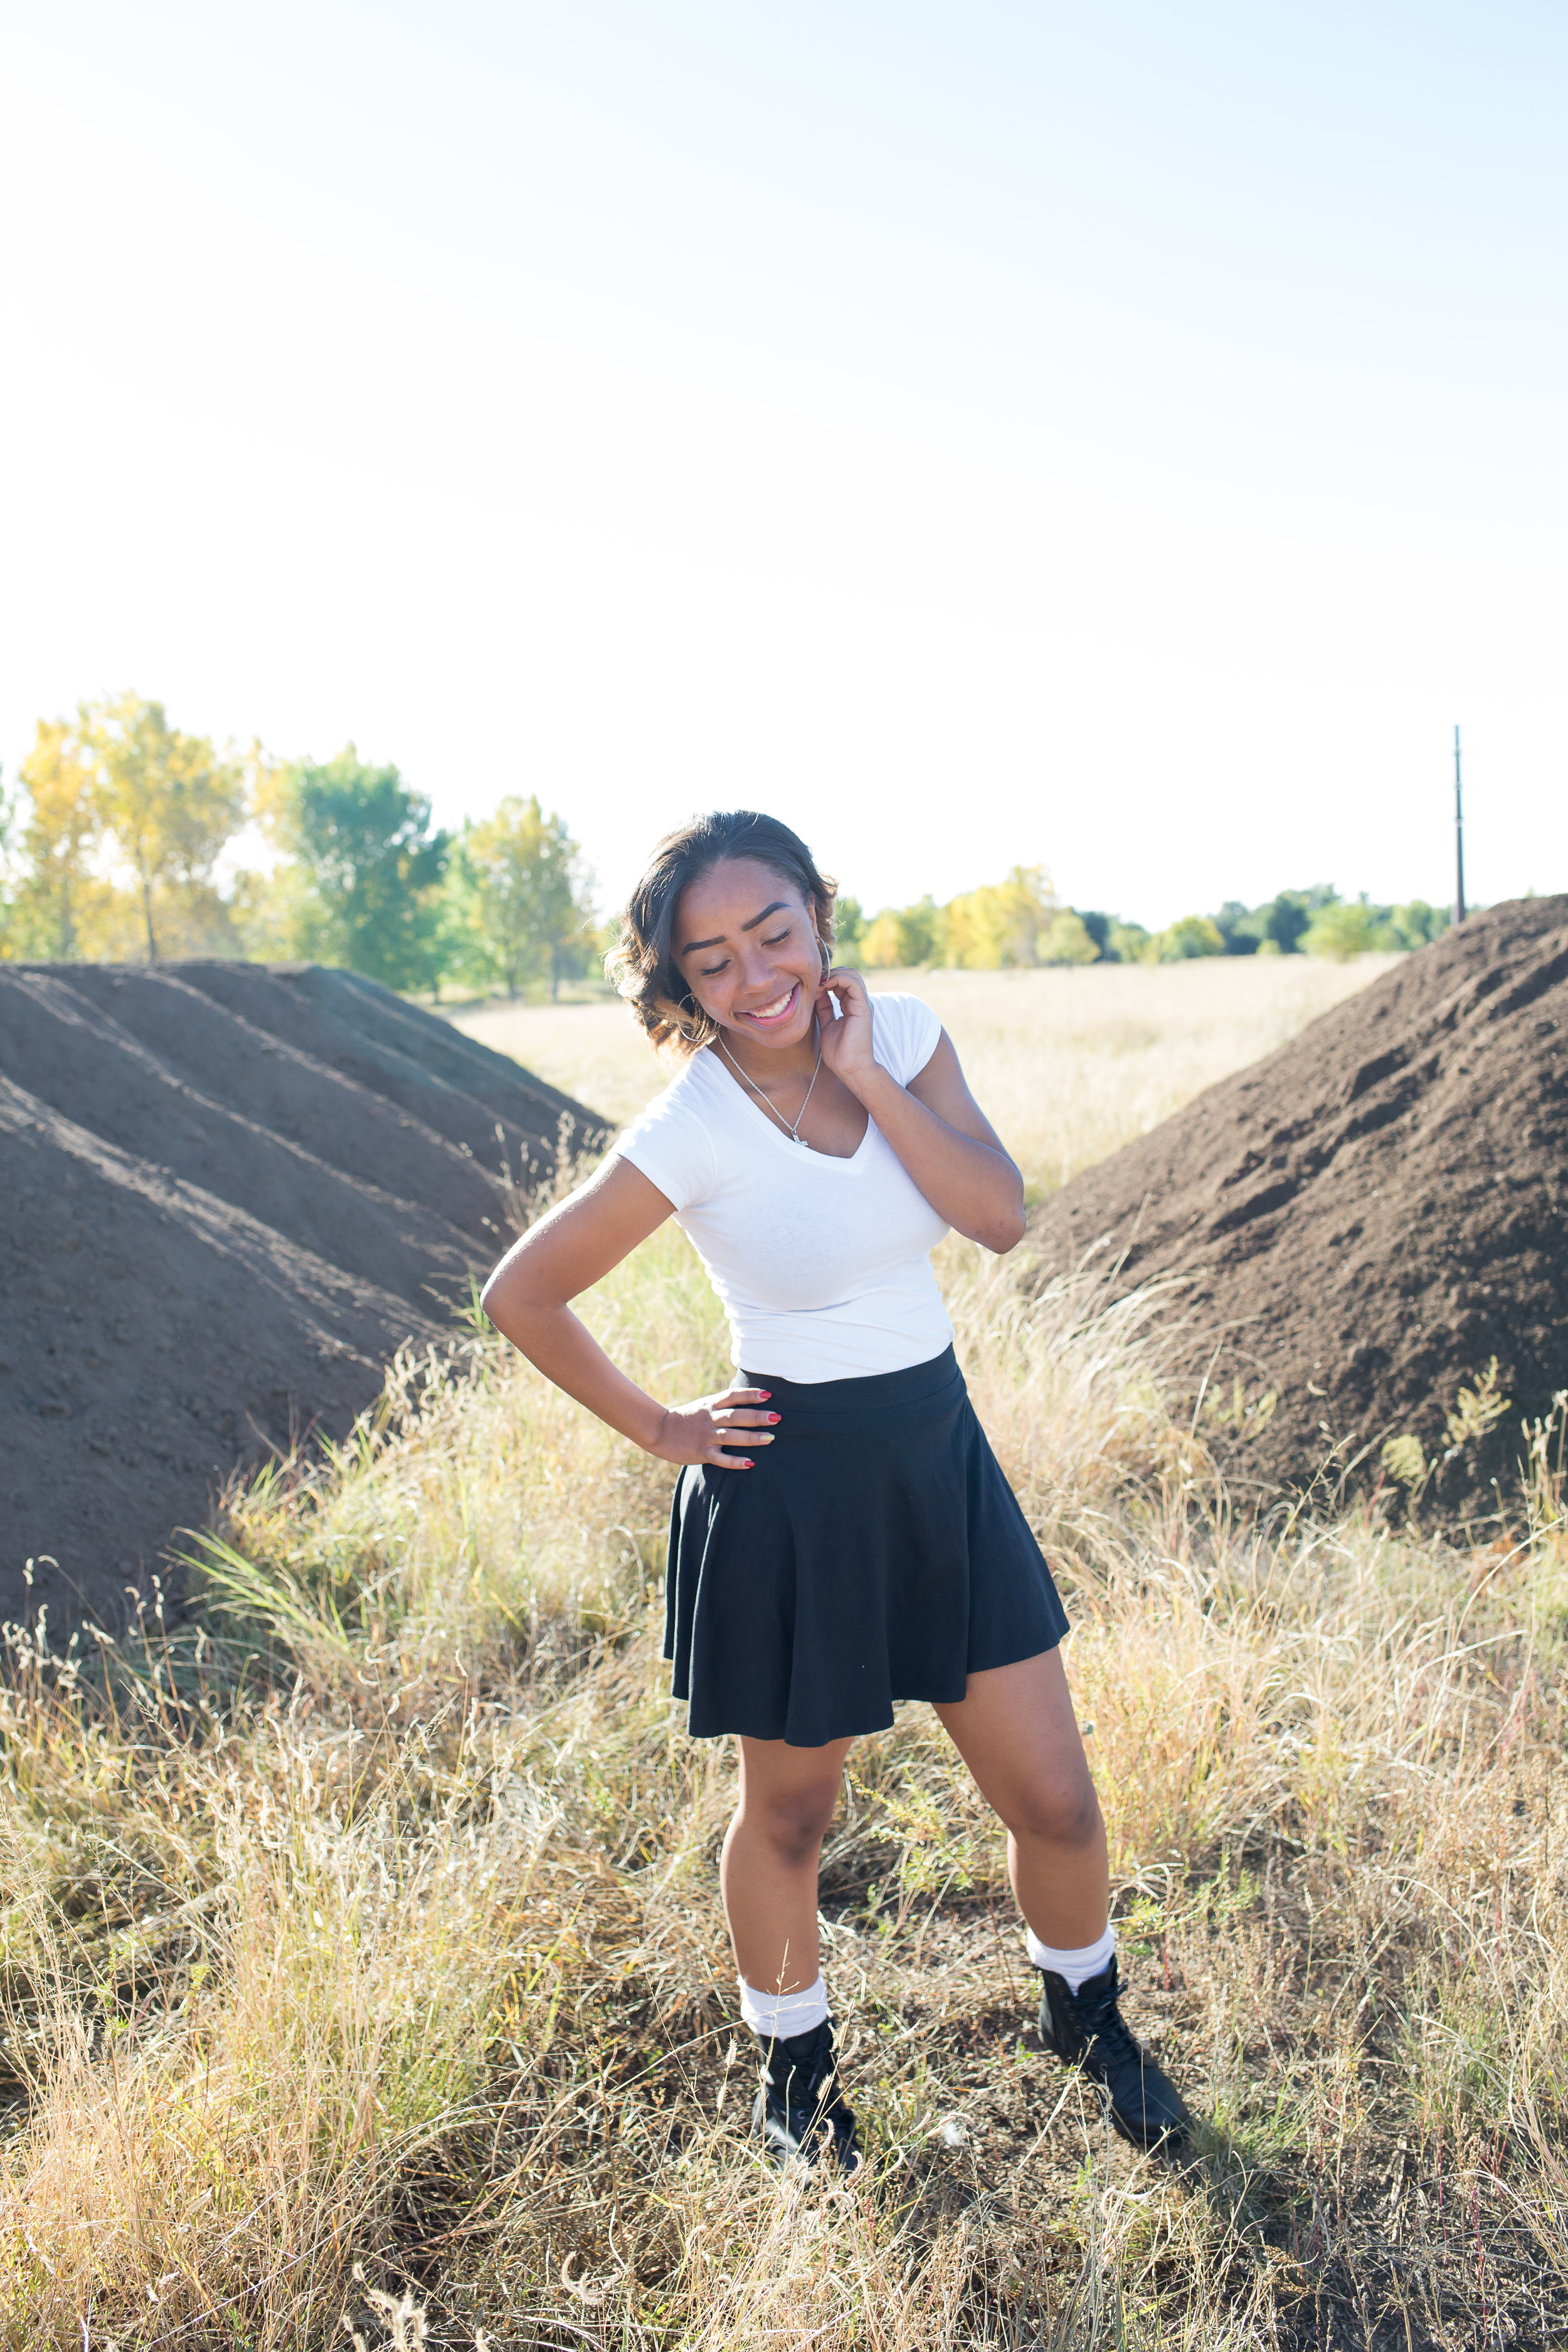 Widefield High School senior girl standing with hand on hip looking at the ground laughing for senior photos at Fountain Creek Regional Park in Colorado Springs, CO Stacy Carosa Photography